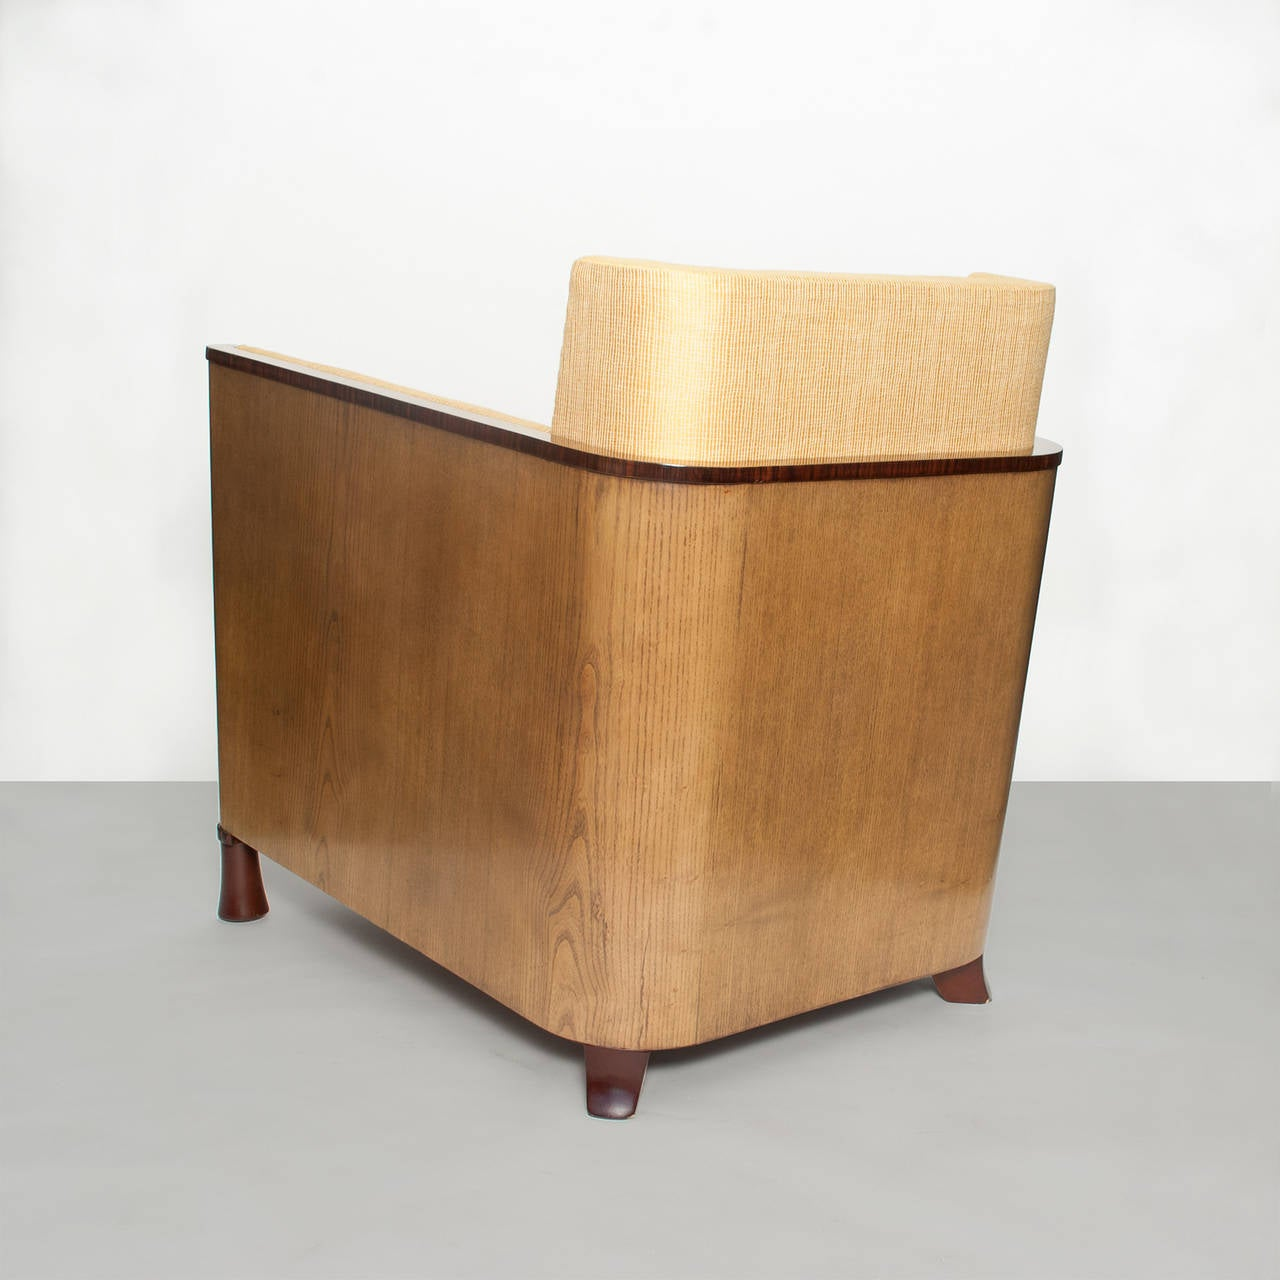 Upholstery Scandinavian Modern Swedish Art Deco Lounge Chair with Veneered Sides and Back For Sale